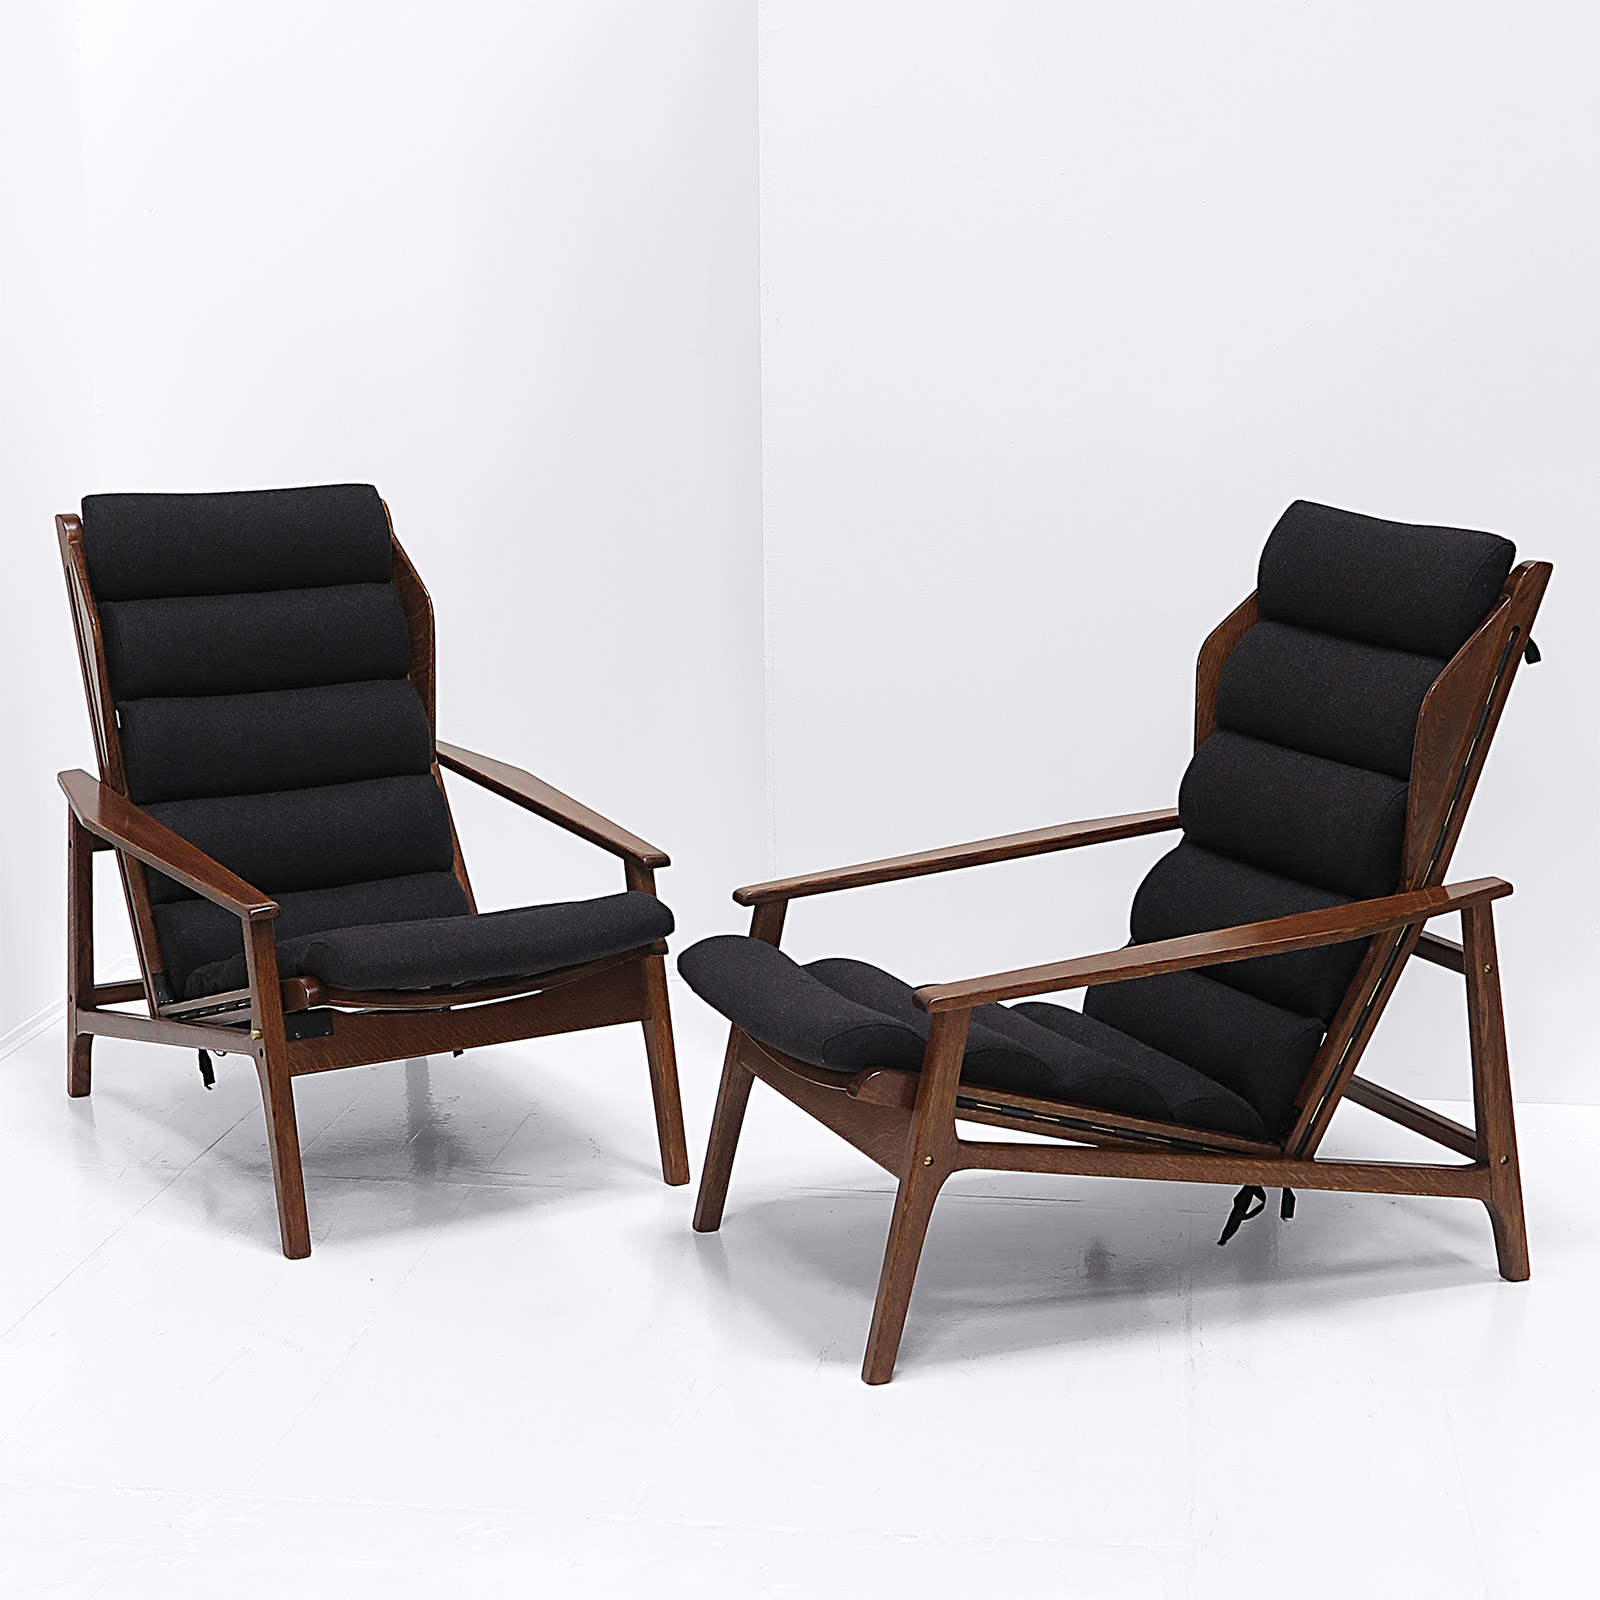 Reclining Lounge Chair Italian Reclining Lounge Chairs Nicholas And Alistair